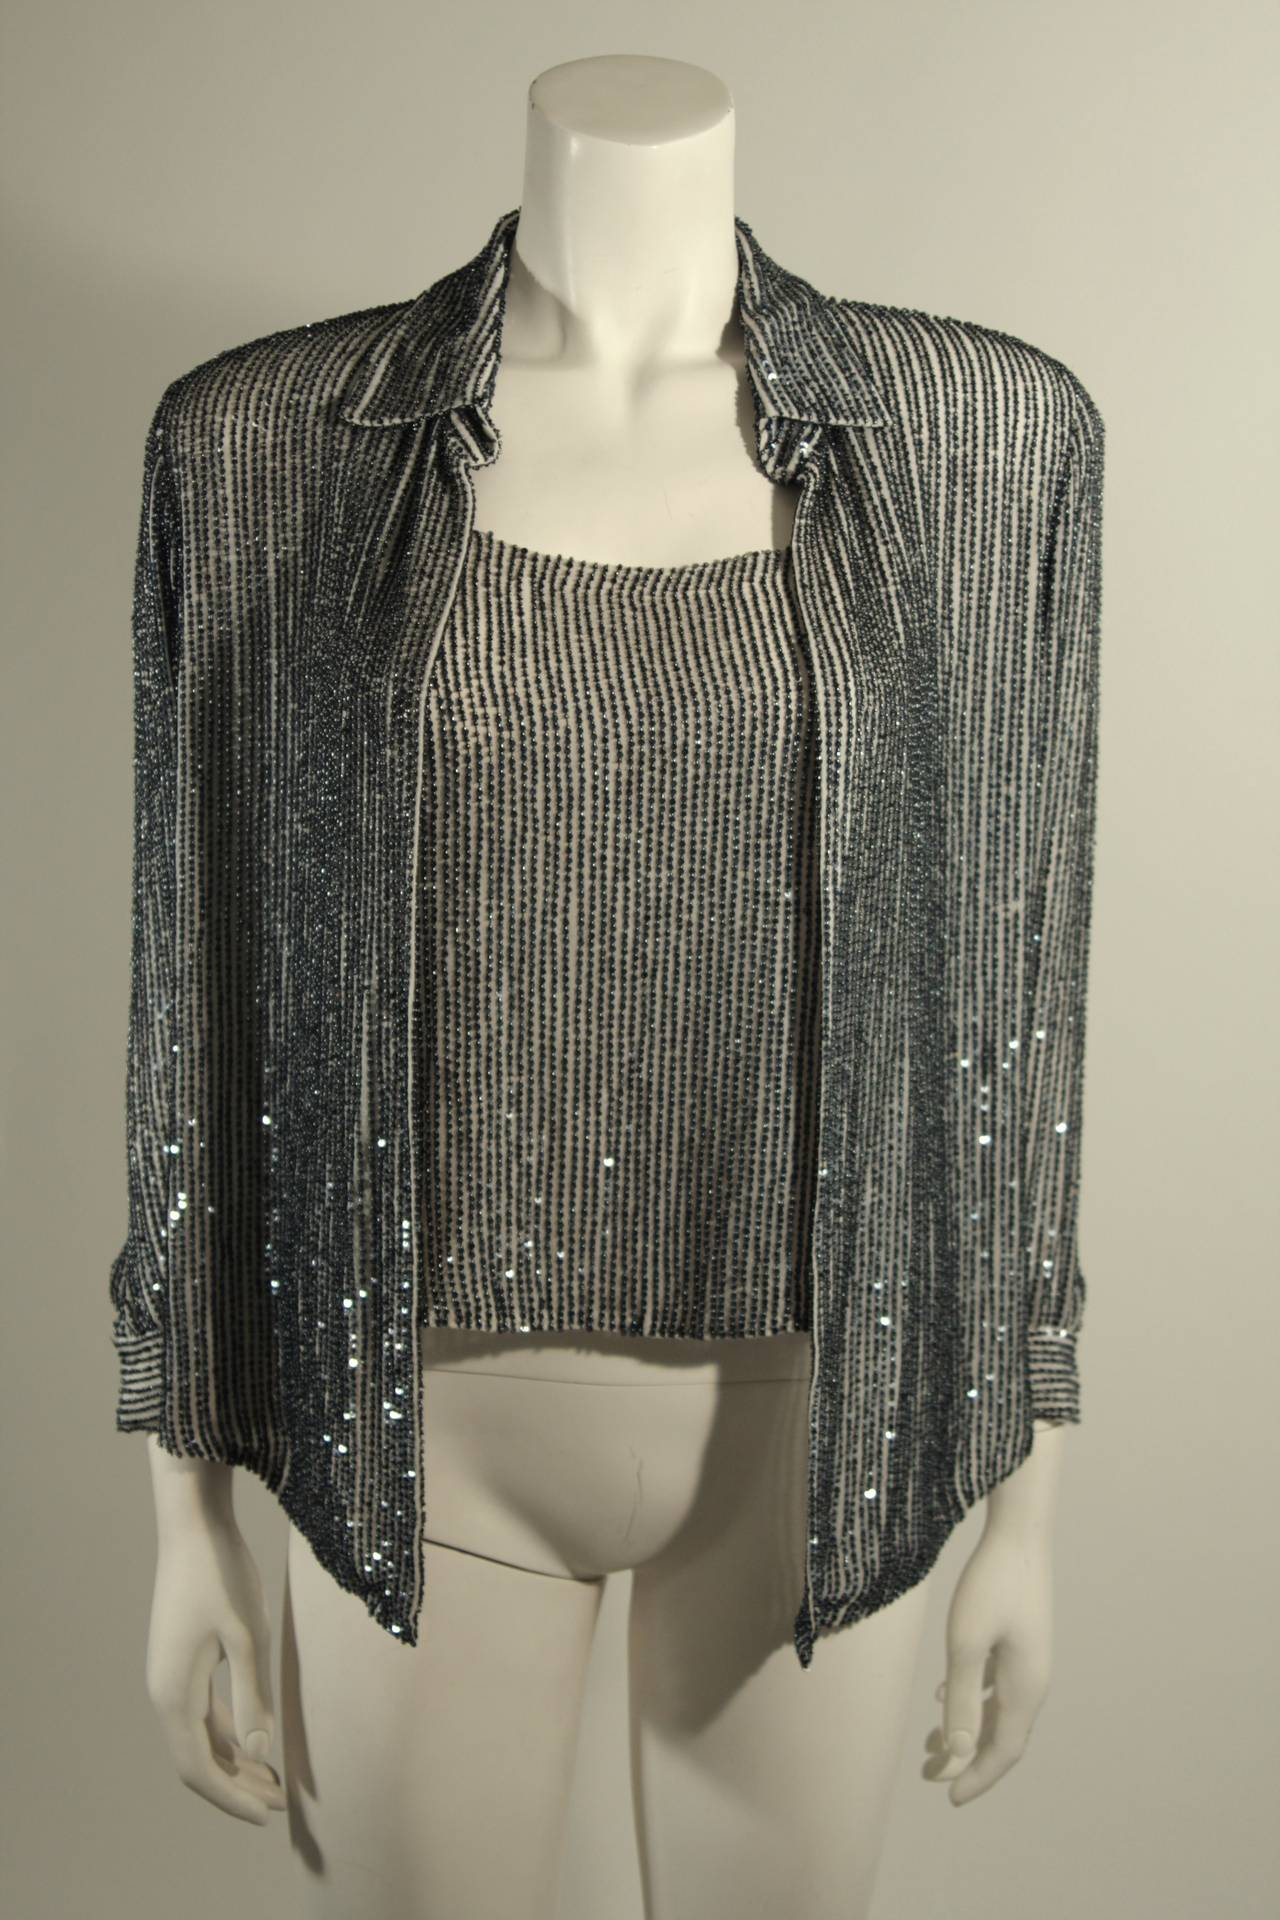 This is an Oscar De La Renta set. The evening set features two pieces; a stunning shirt and camisole combination for day or evening. The camisole has a  zipper closure for ease of access. The beads and sequins are a dark blue with